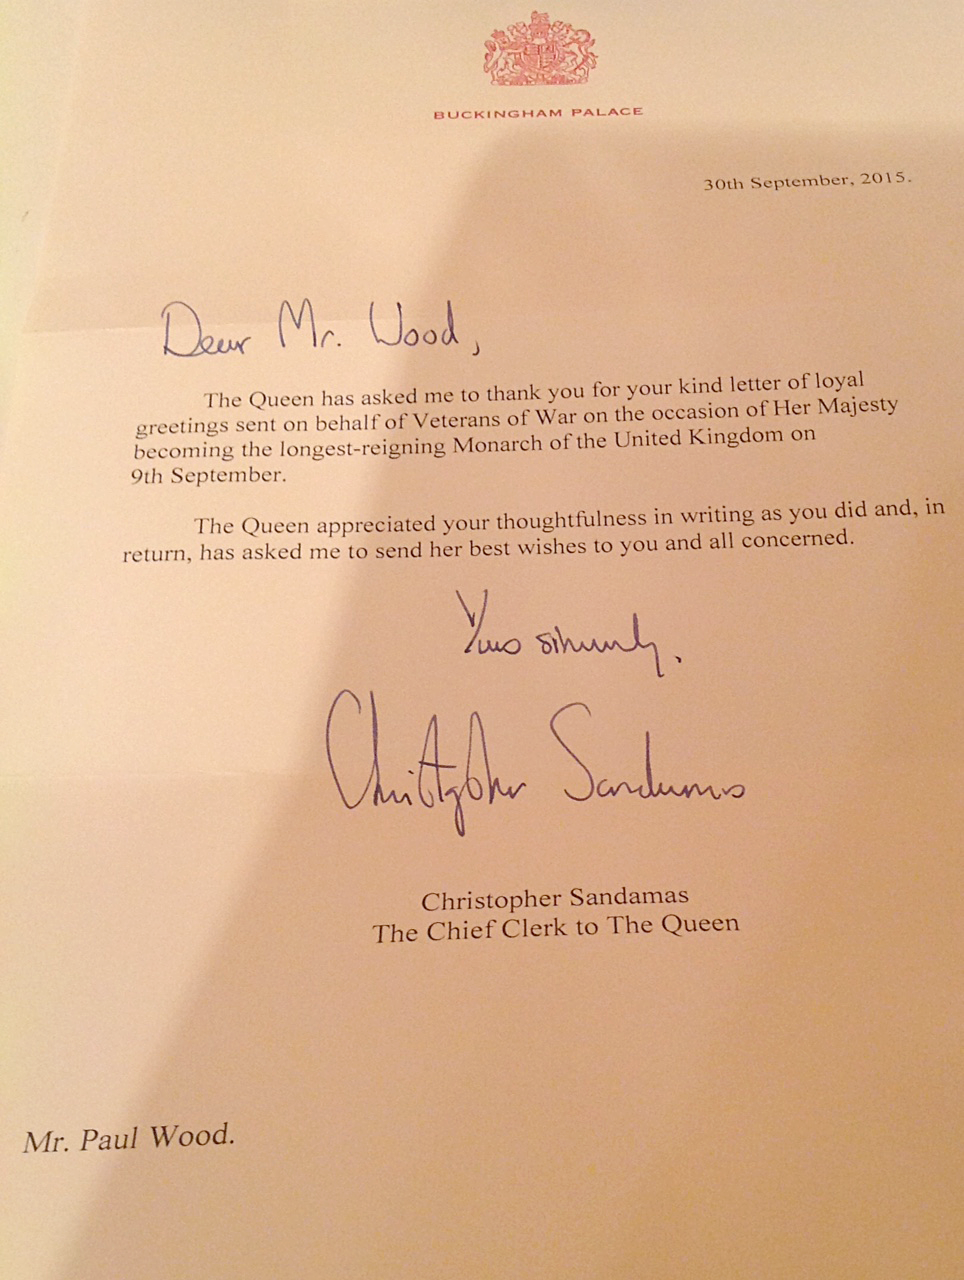 A letter on behalf of the Queen